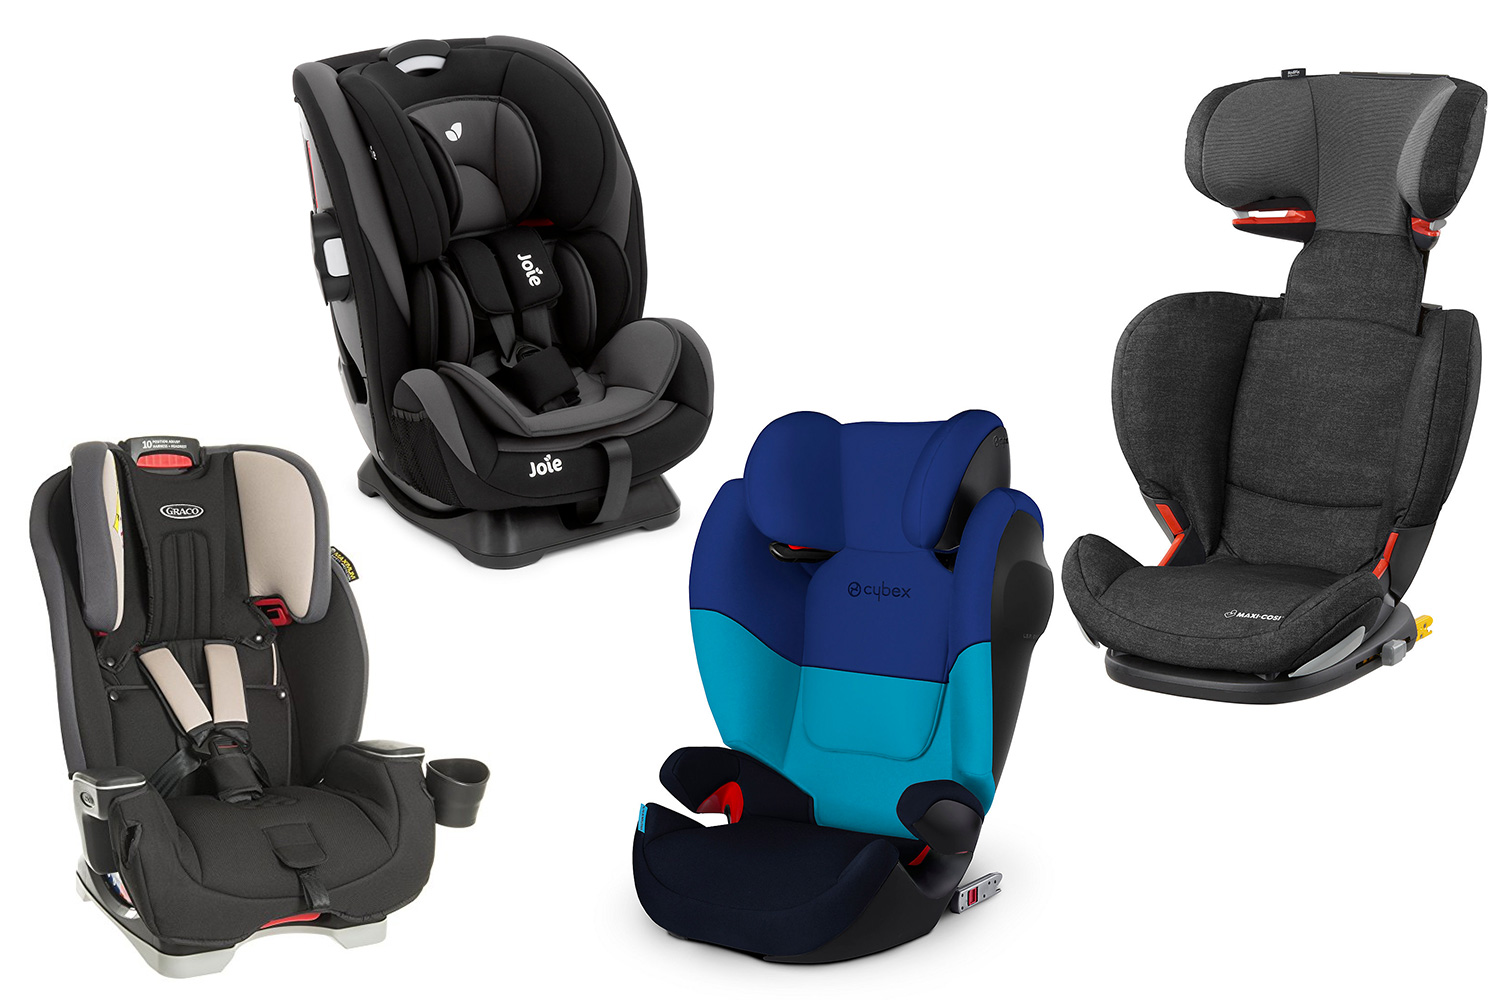 Joie Baby Car Seat Usa Best Car Seats 2019 The Sun Uk